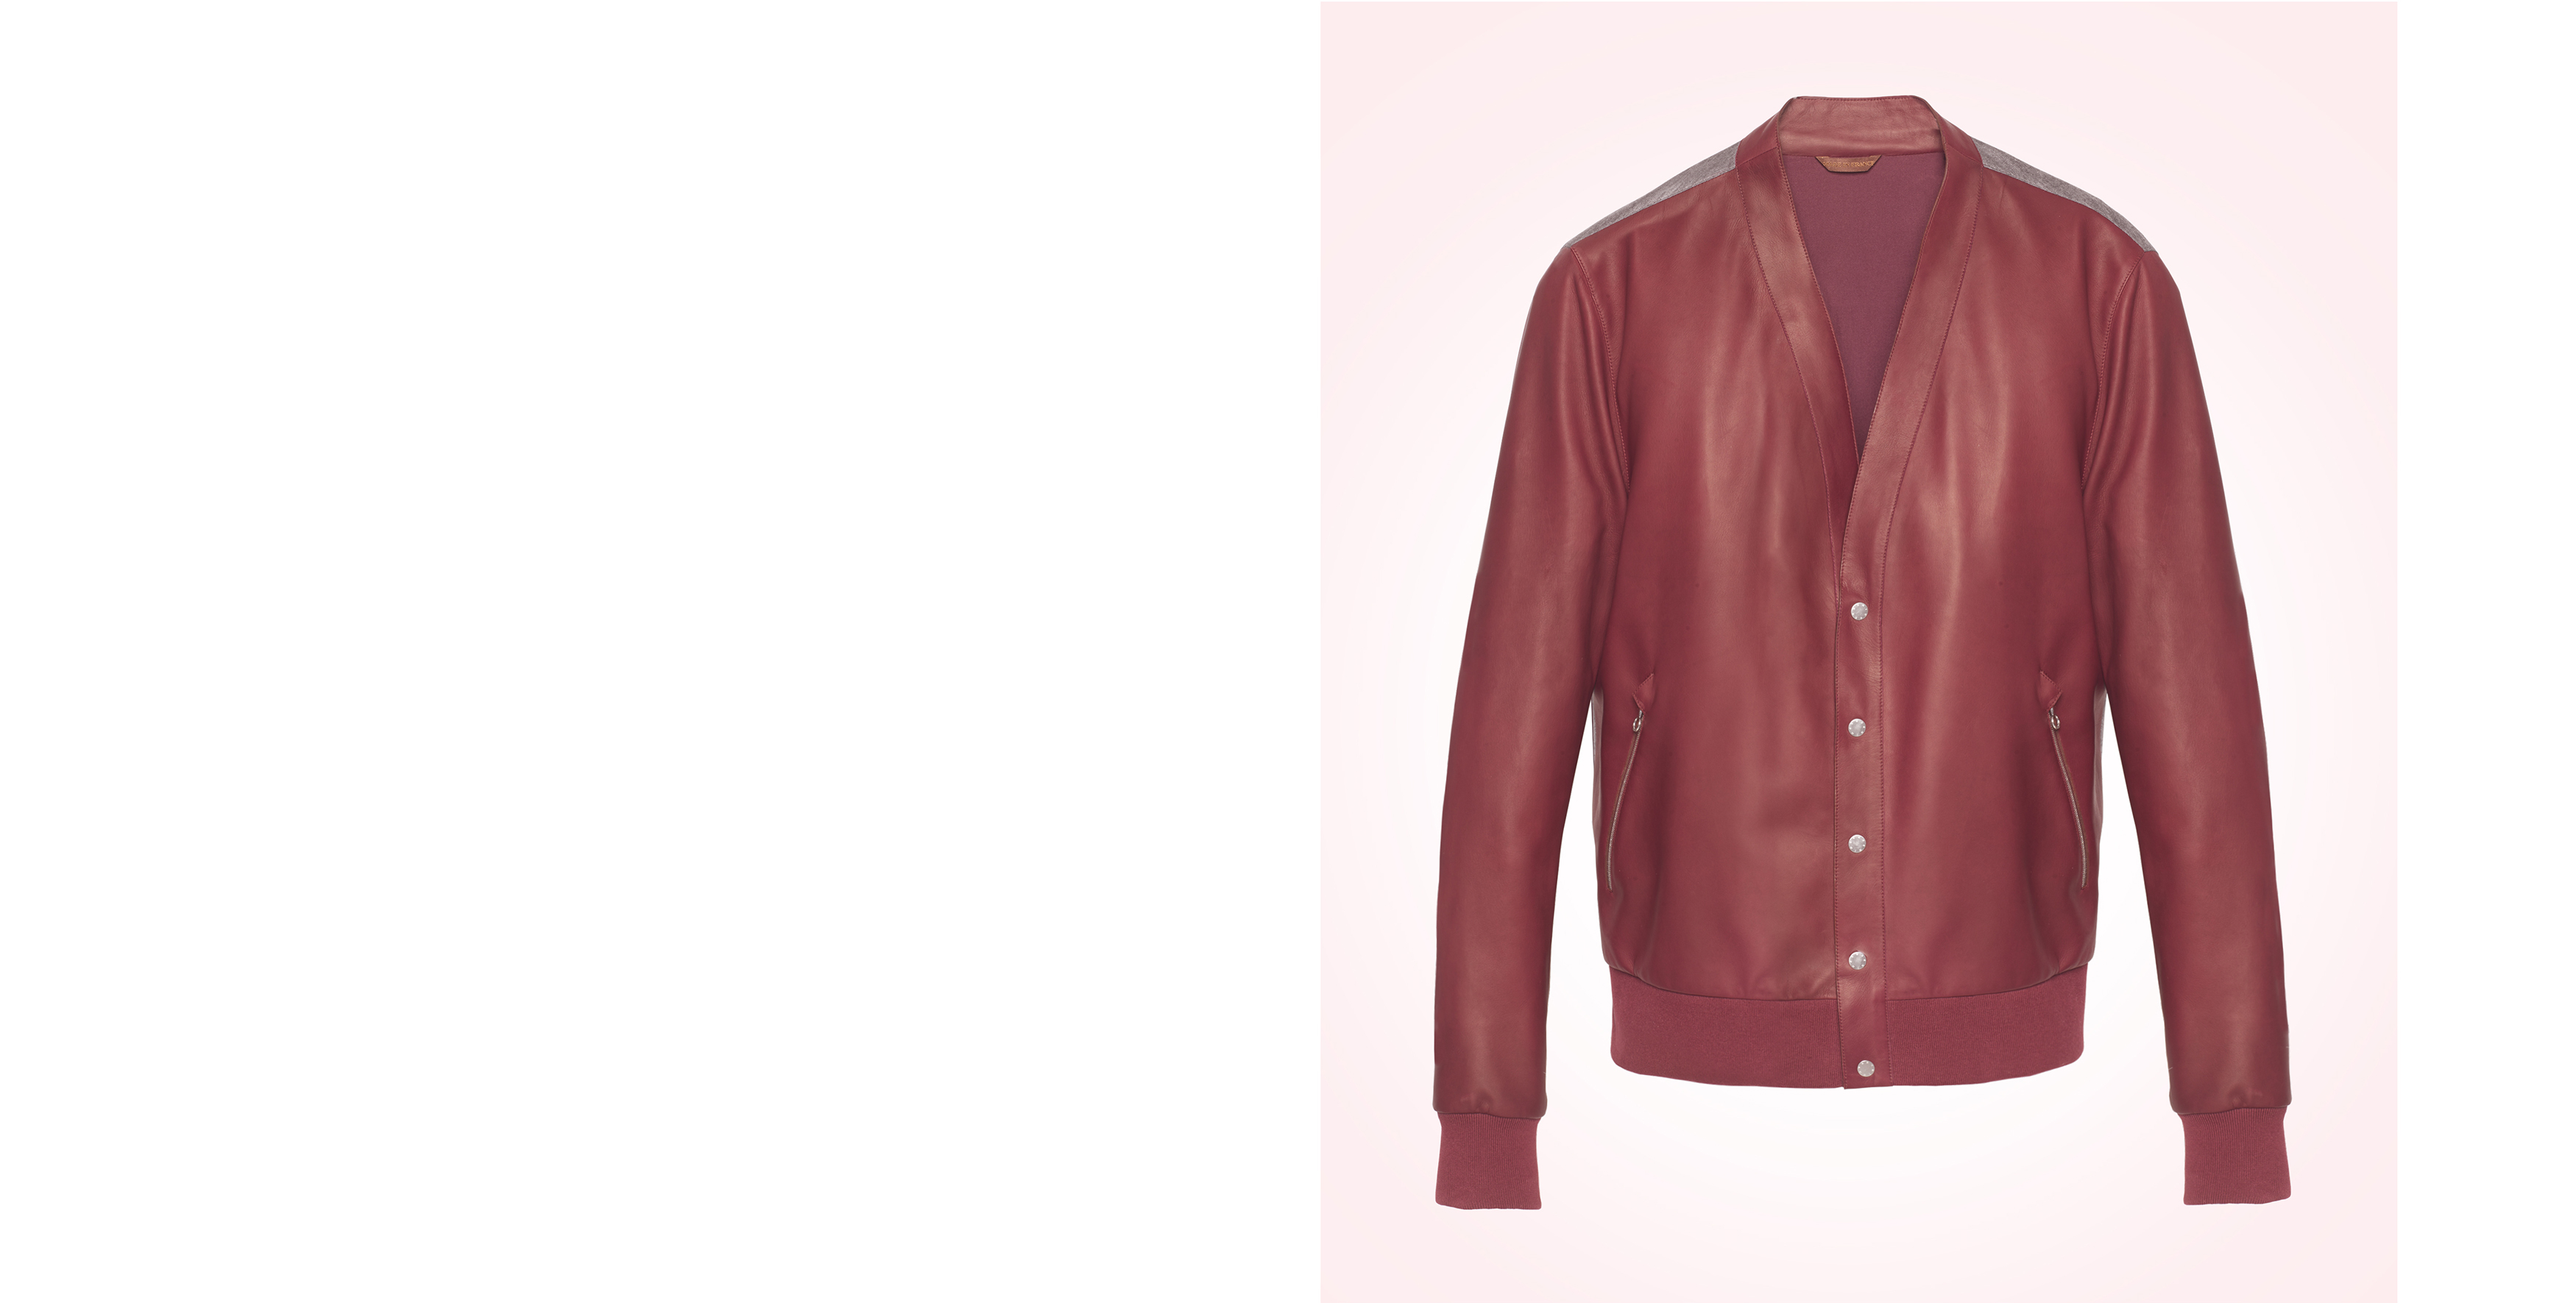 Cardi jacket in cardinal nymphea lamb leather, back in anthracite cashmere jersey